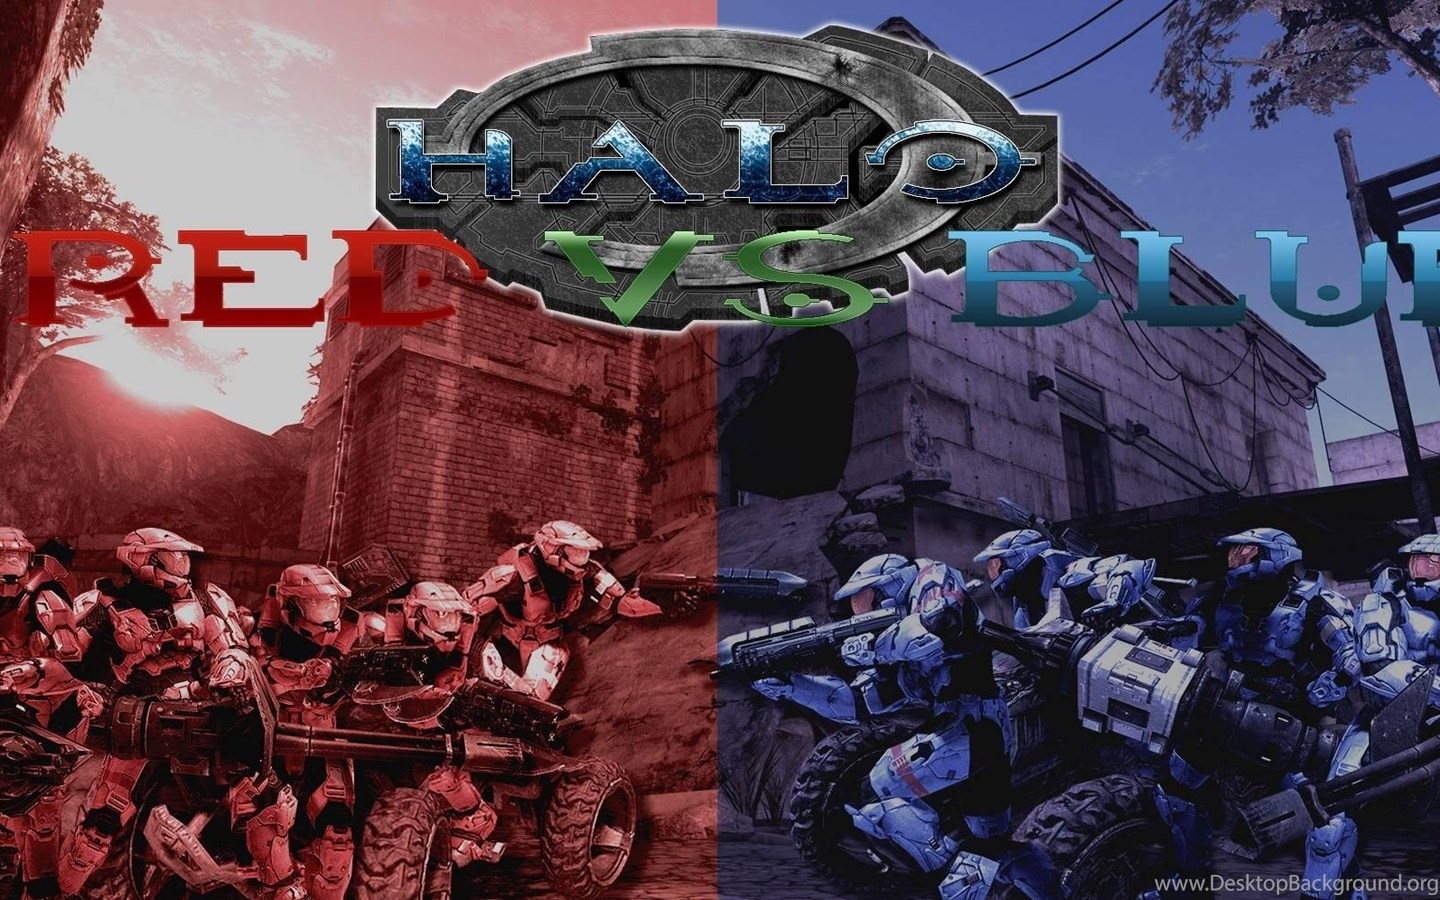 Halo Red Vs Blue Wallpapers Game Wallpapers Hd Desktop Background